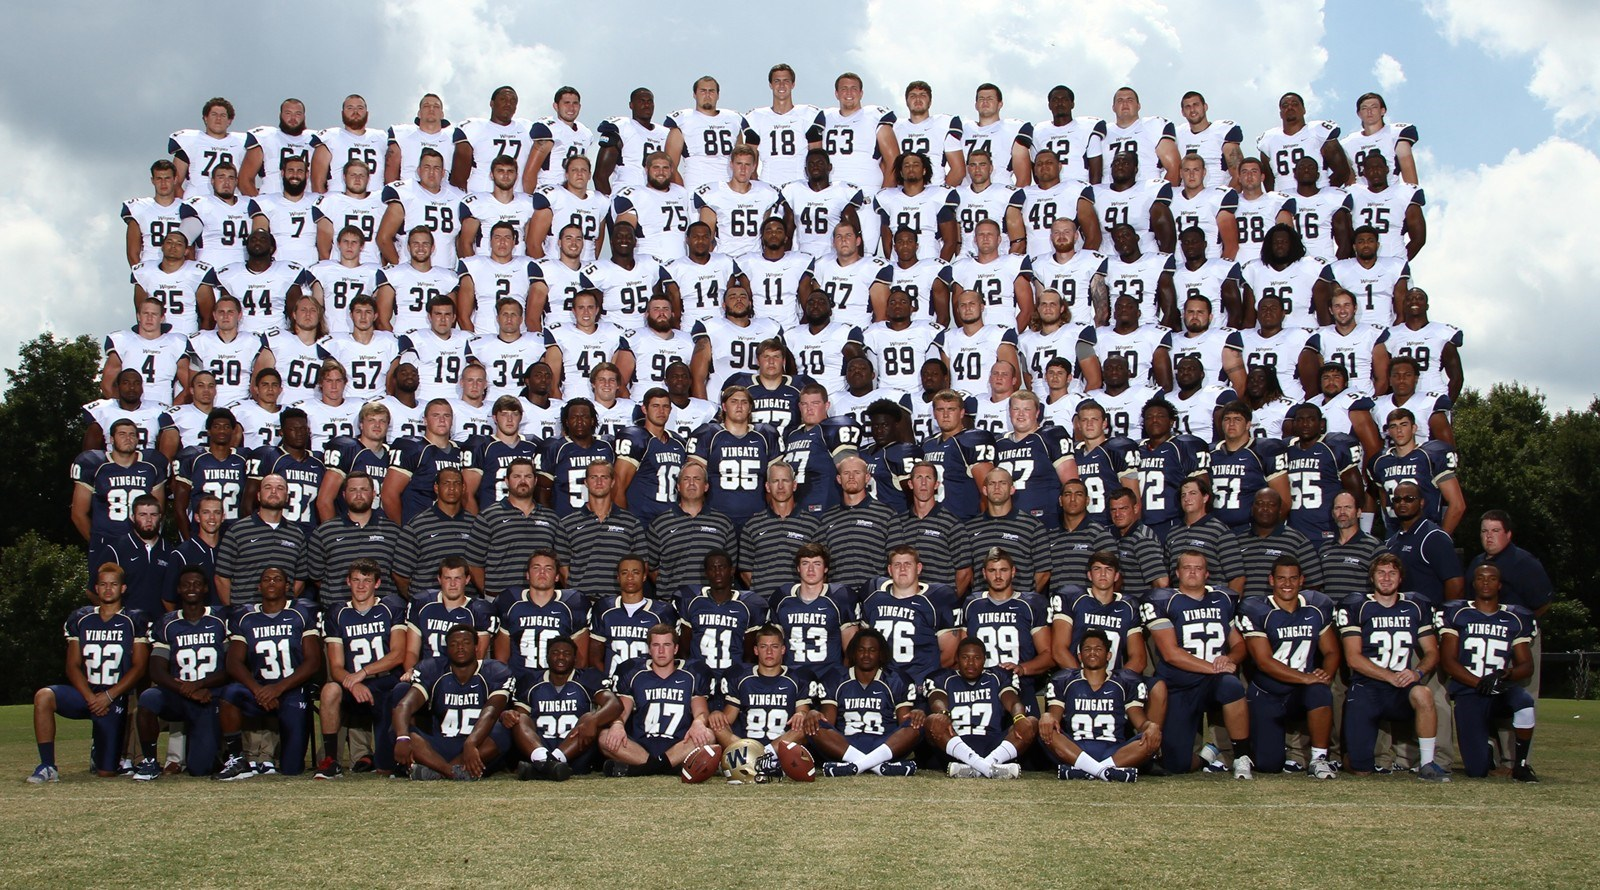 2014 0 Roster Wingate University Athletics